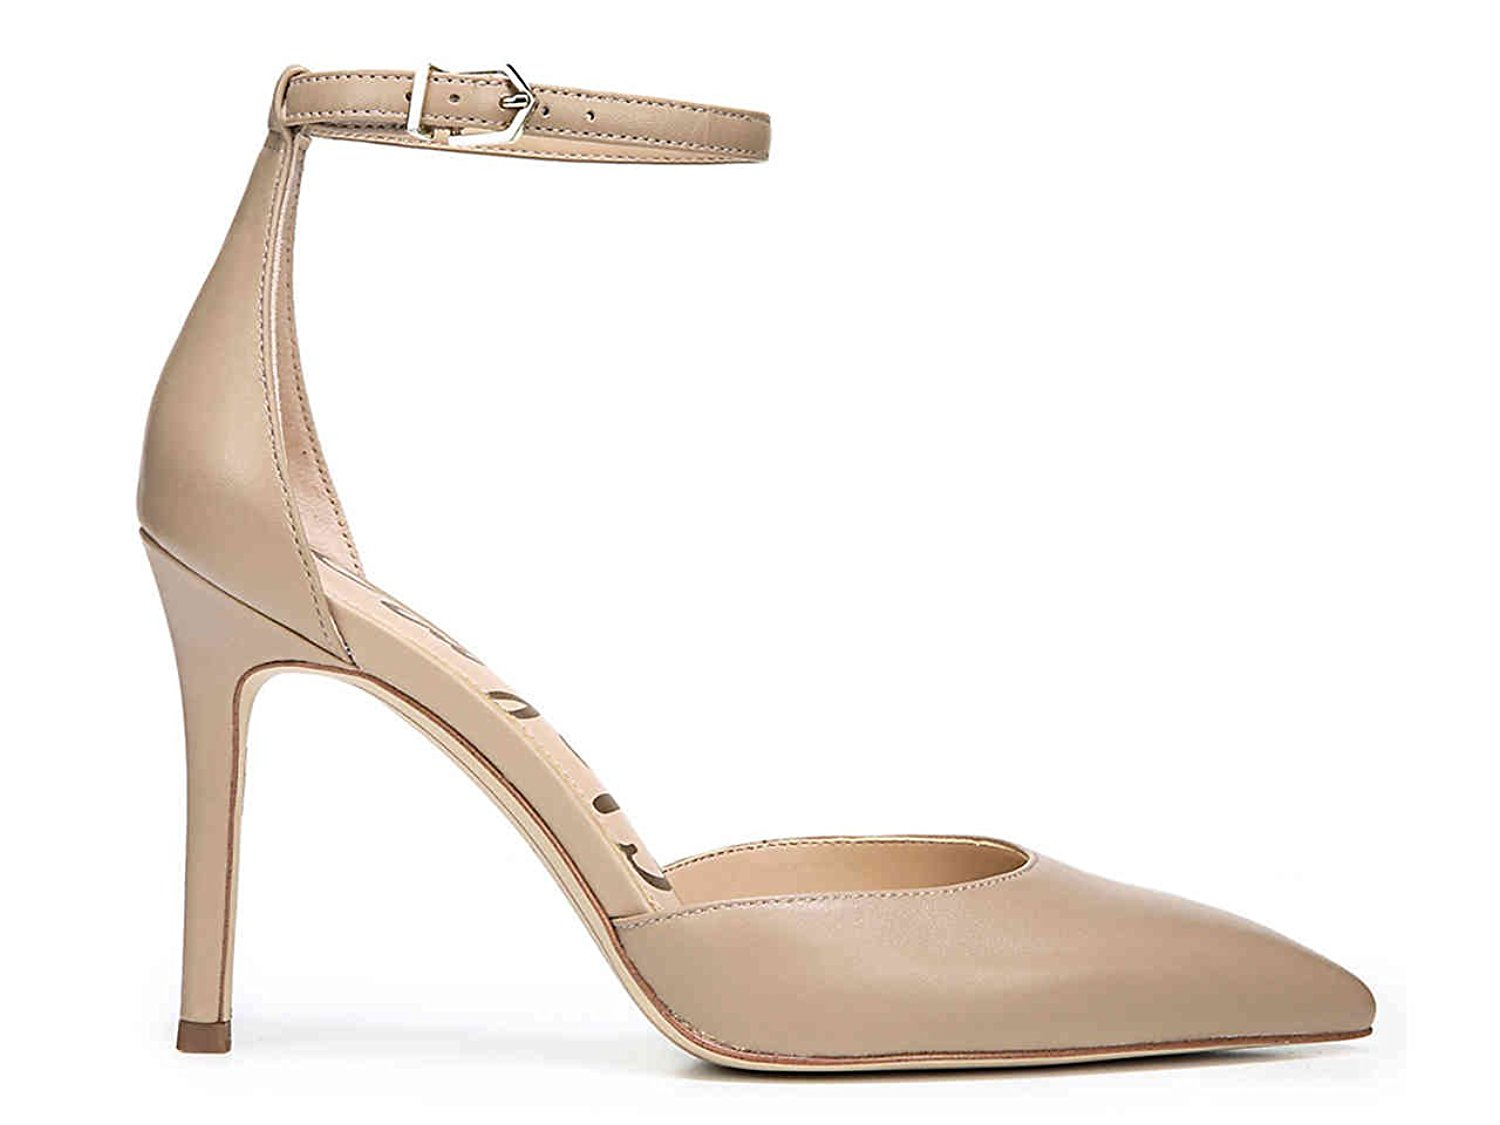 Sam Edelman Womens Harlow Pointed Toe Ankle Strap Dorsay Pumps Nude Size 9.0